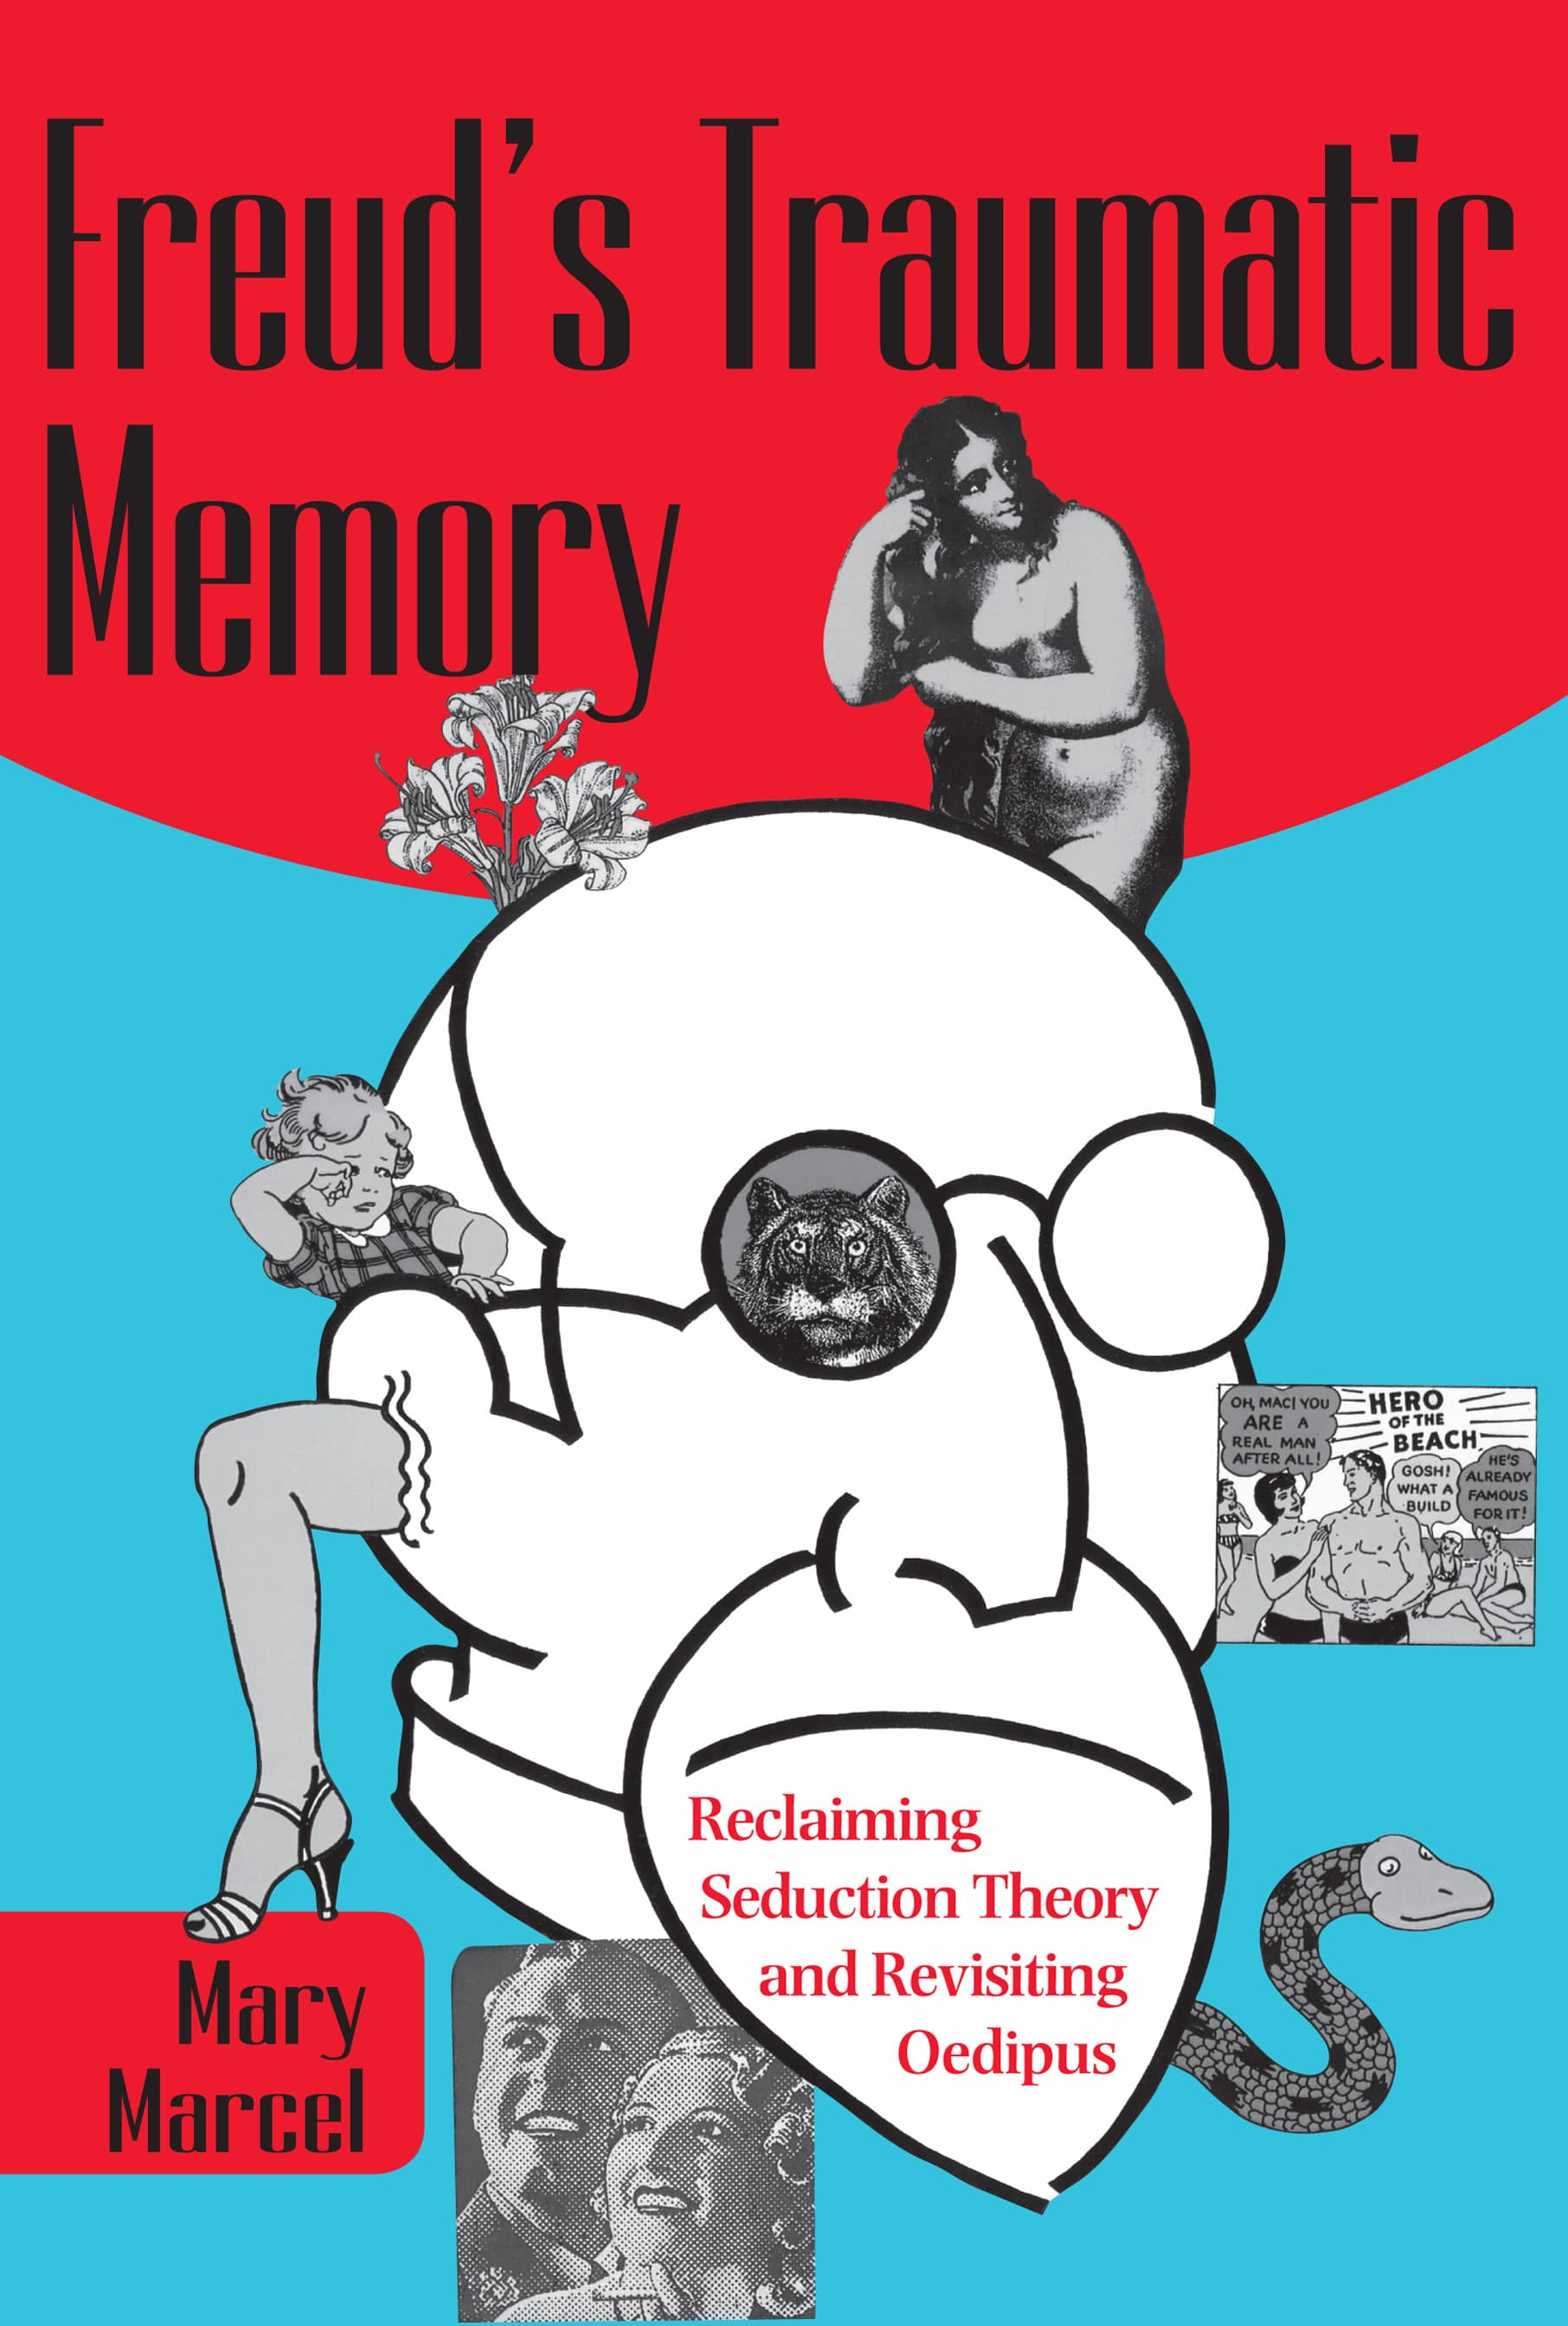 Marcel Cvr - Freud's Traumatic Memory: Reclaiming Seduction Theory and Revisiting Oedipus